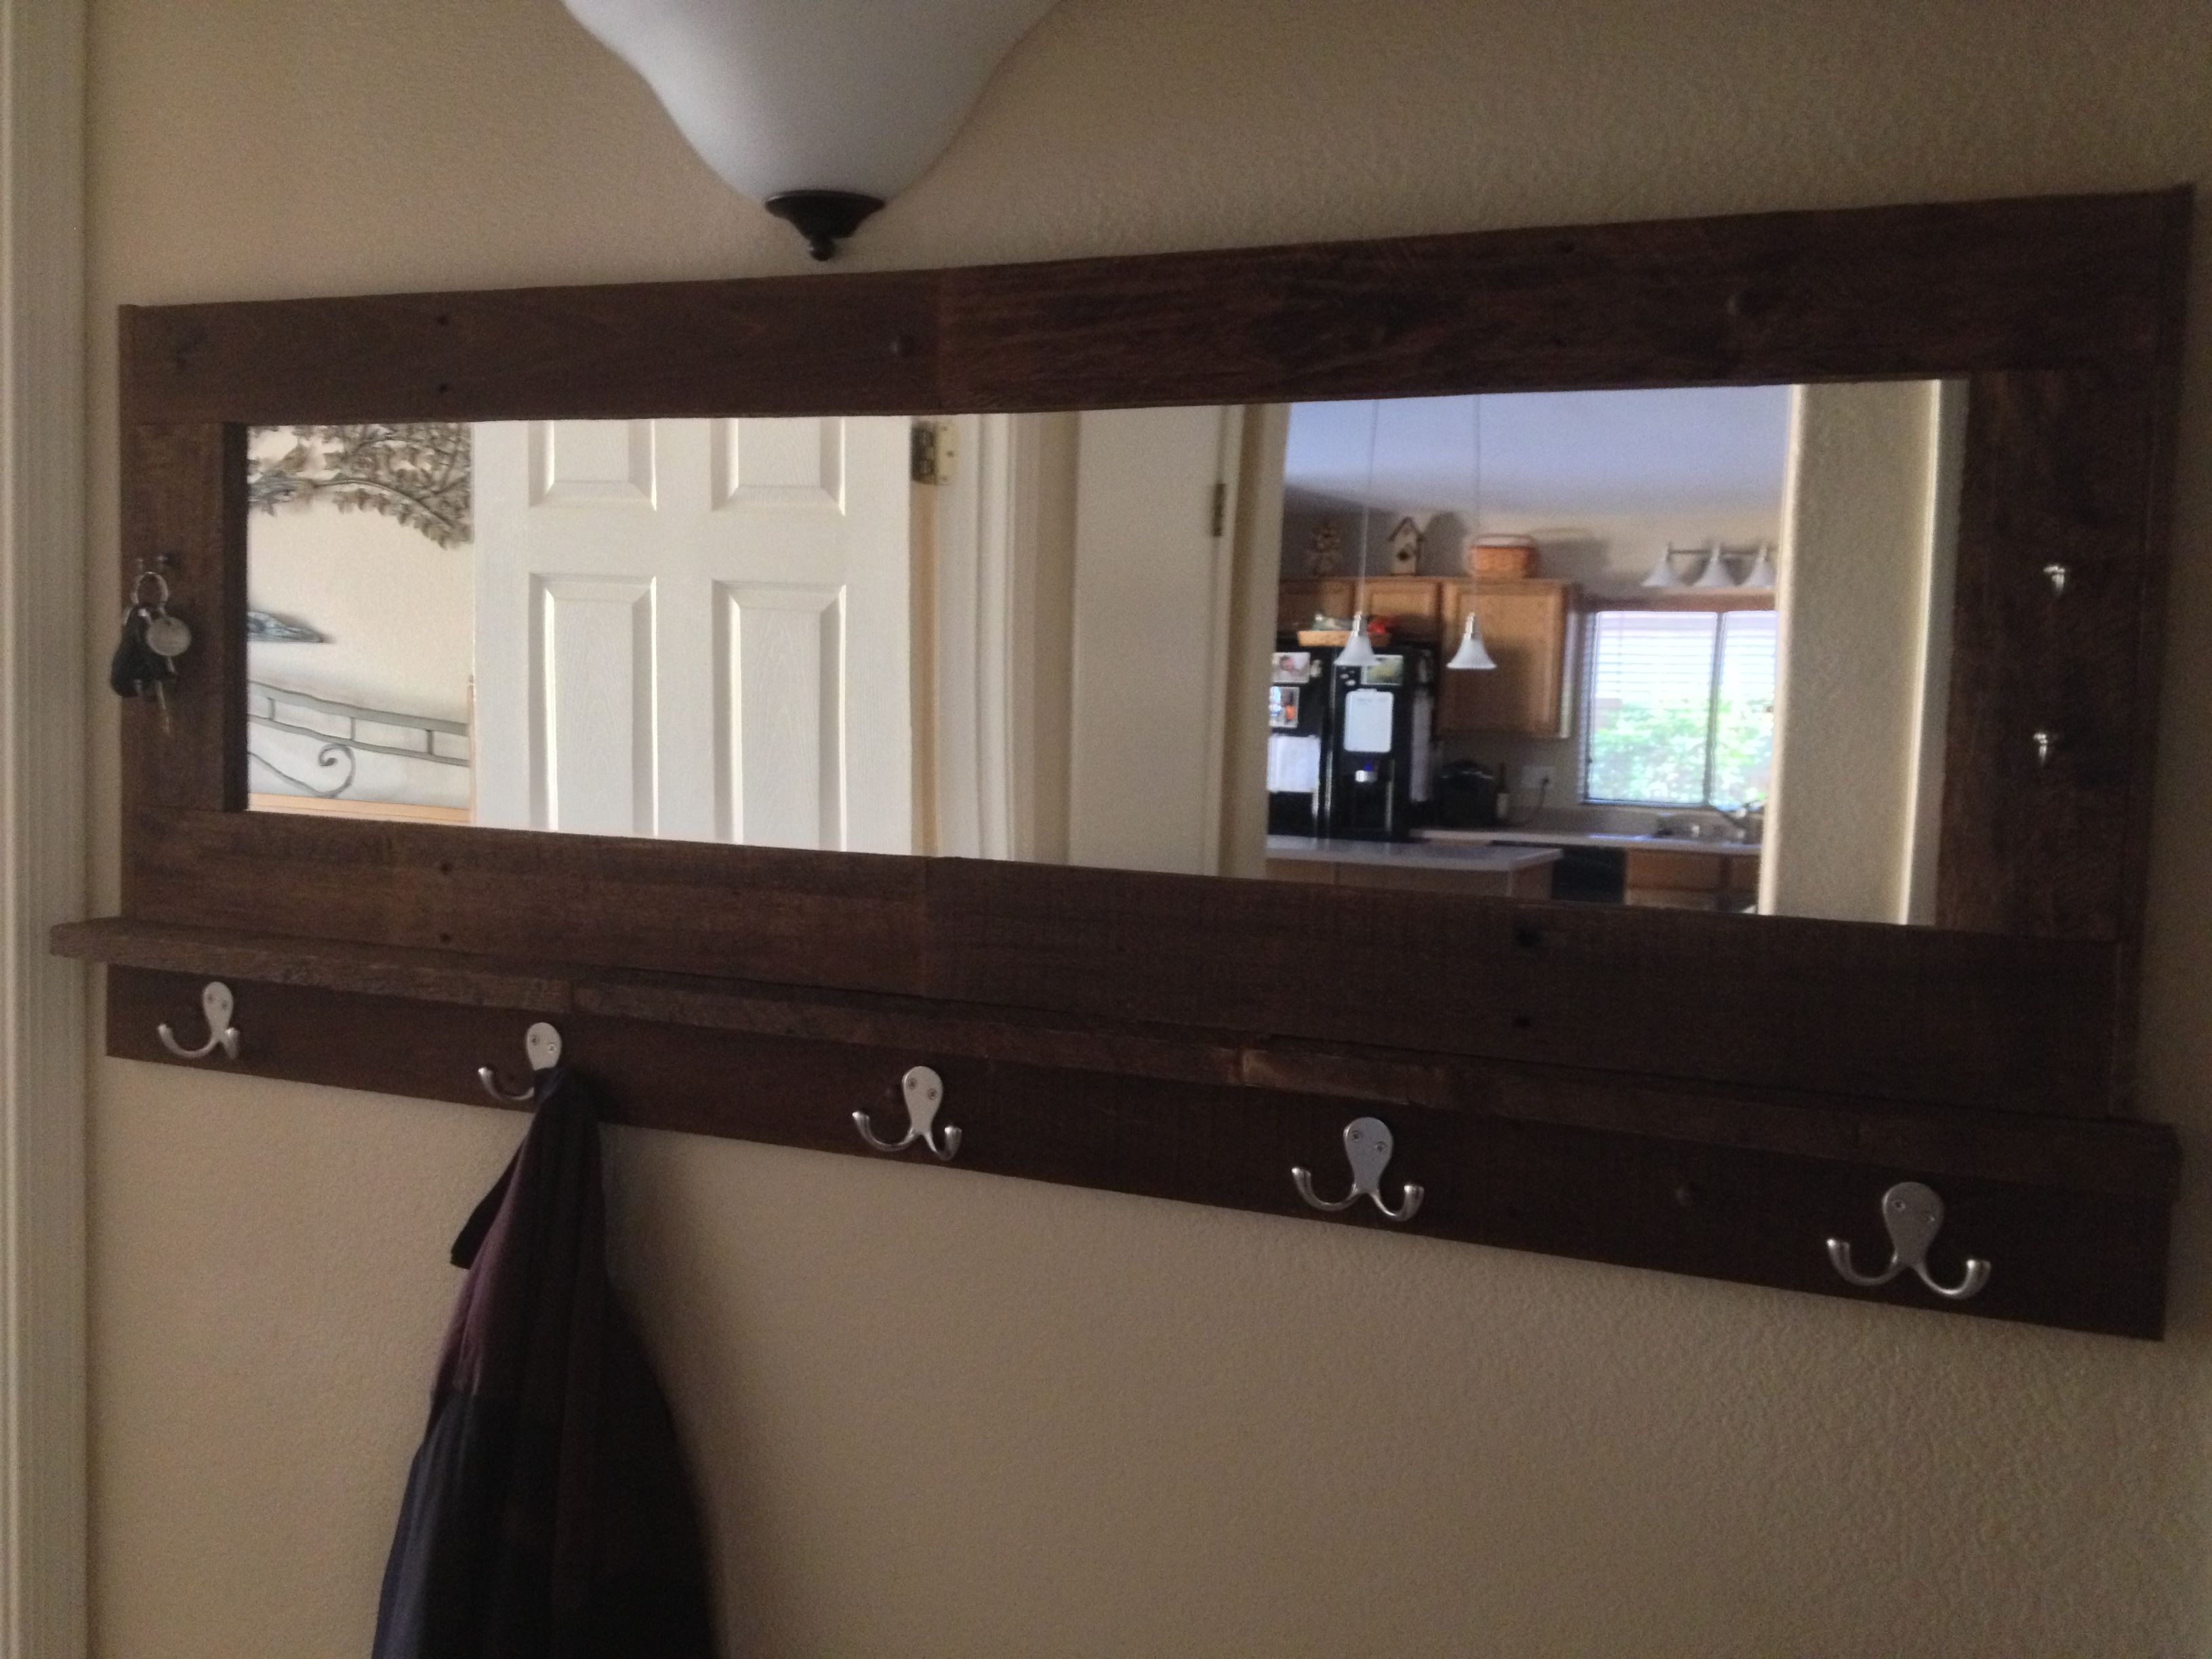 Pin By Diane Rainbow On Home Projects Diy Entryway Coat Rack Wall Shelves